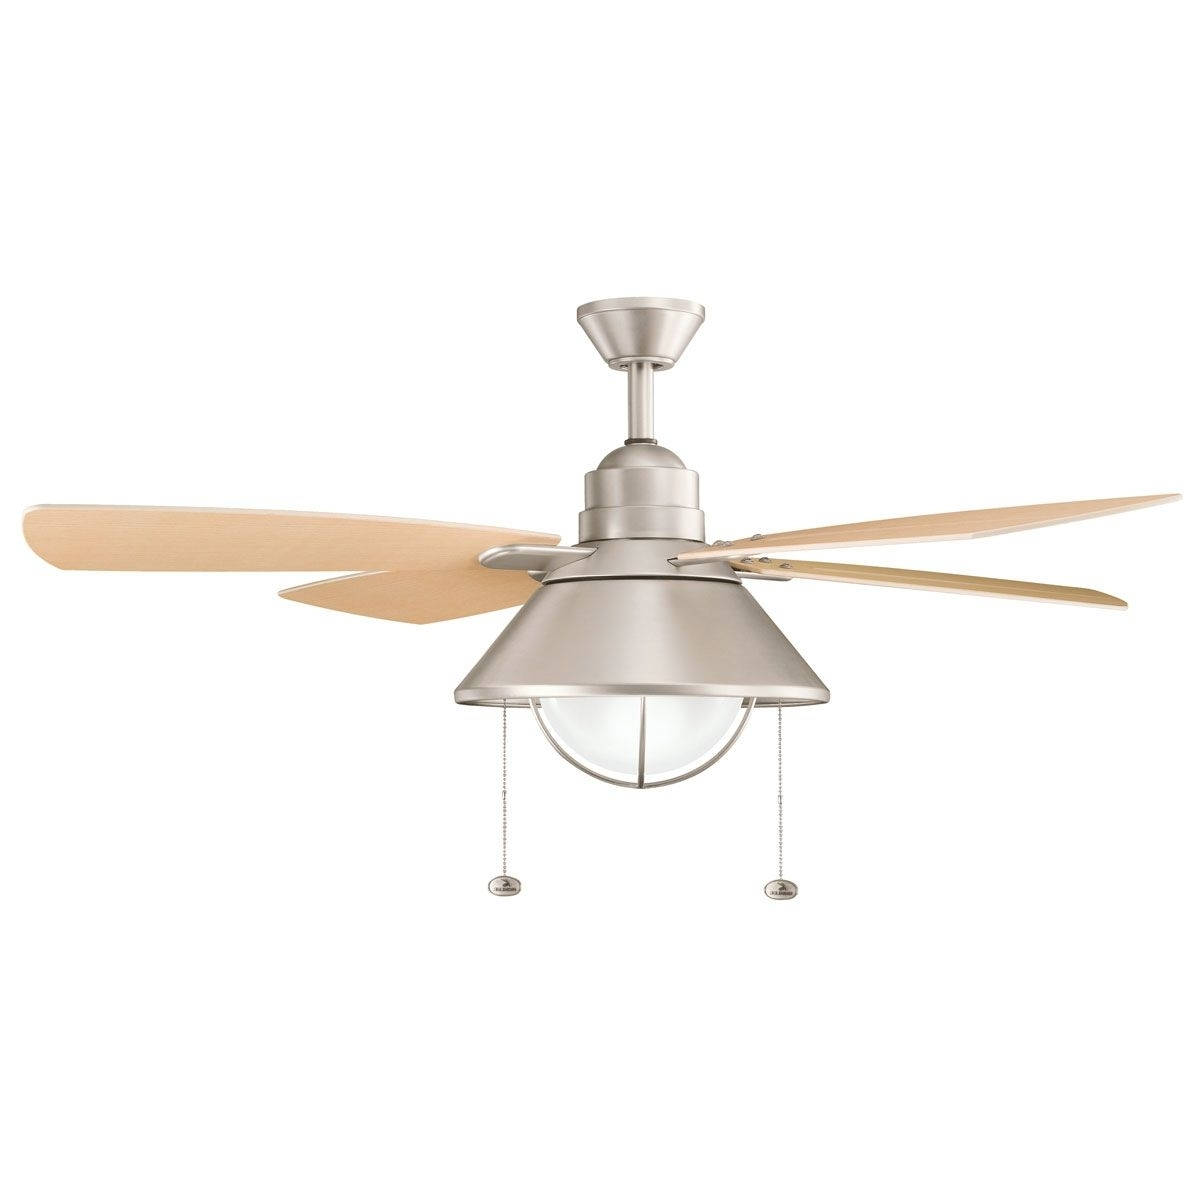 Kichler Fans Seaside Ceiling Fan In Brushed Nickel (Gallery 14 of 20)